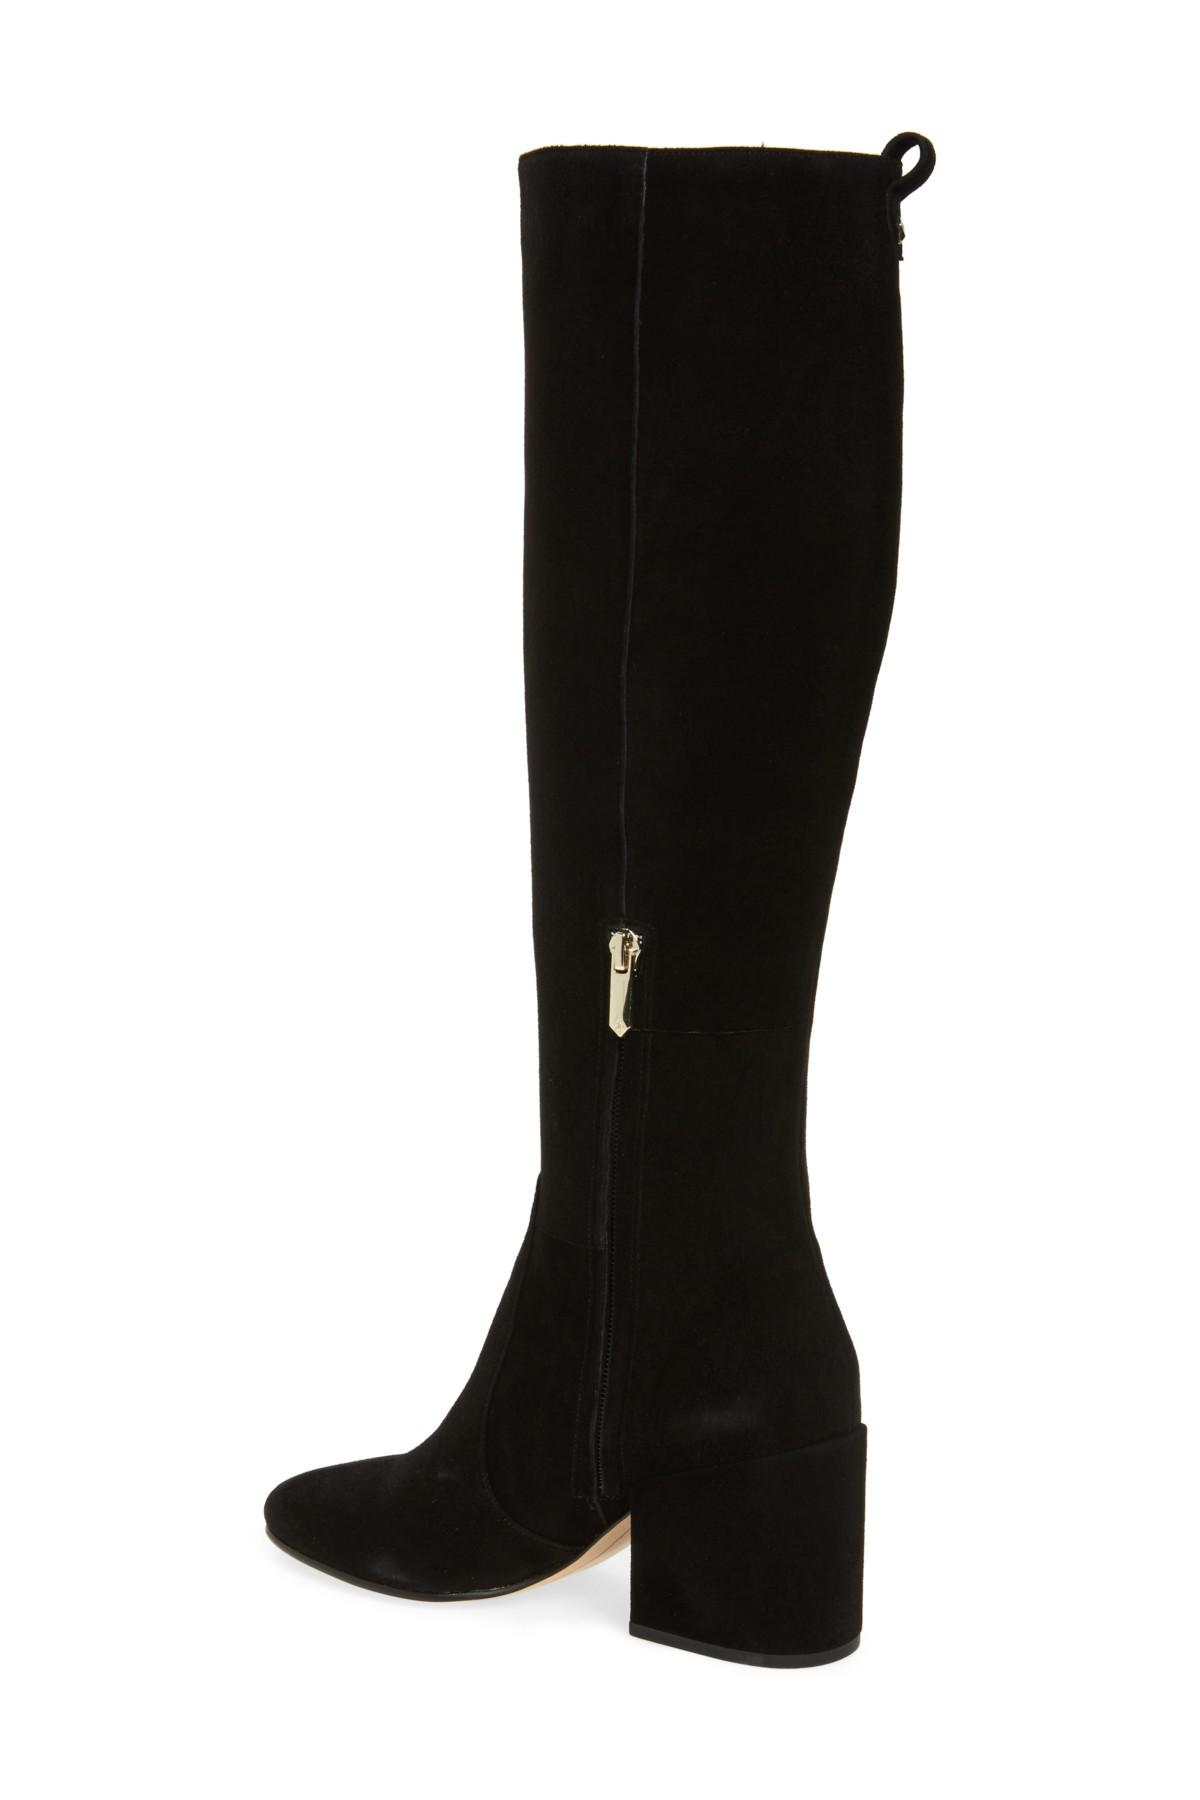 e7afcad8545 Lyst - Sam Edelman Thora Knee High Boot (women) in Black